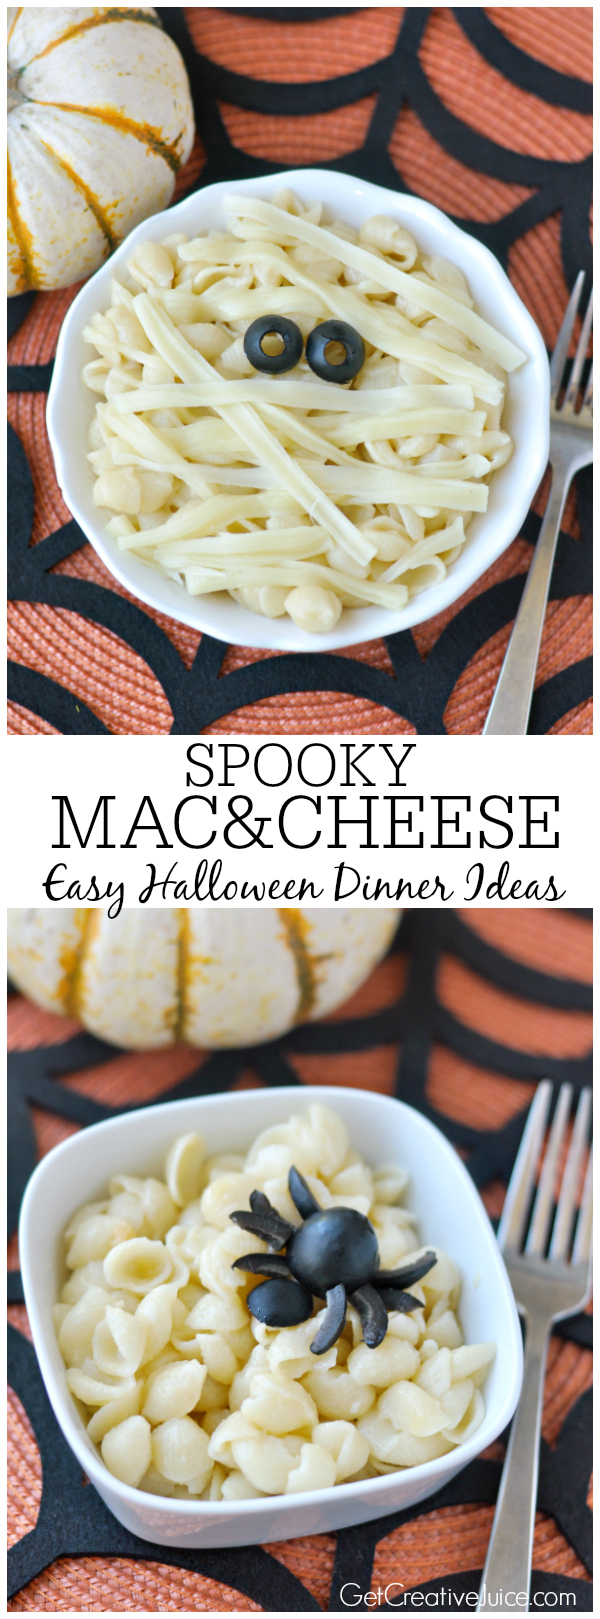 SPOOKY Mac & cheese - easy halloween dinner ideas!